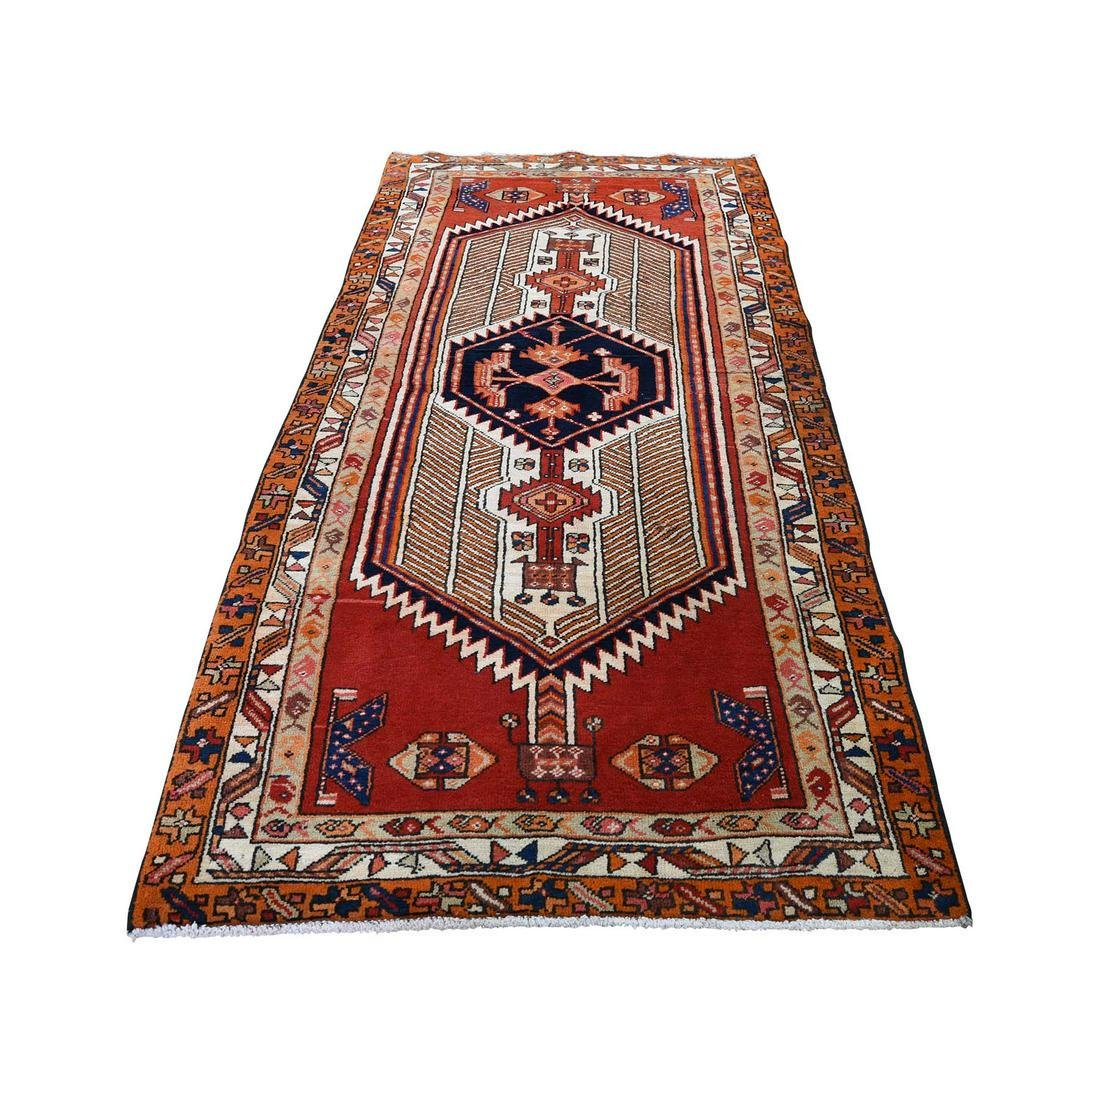 Northeast Persian Tribal Hand-Knotted Pure Wool Wide